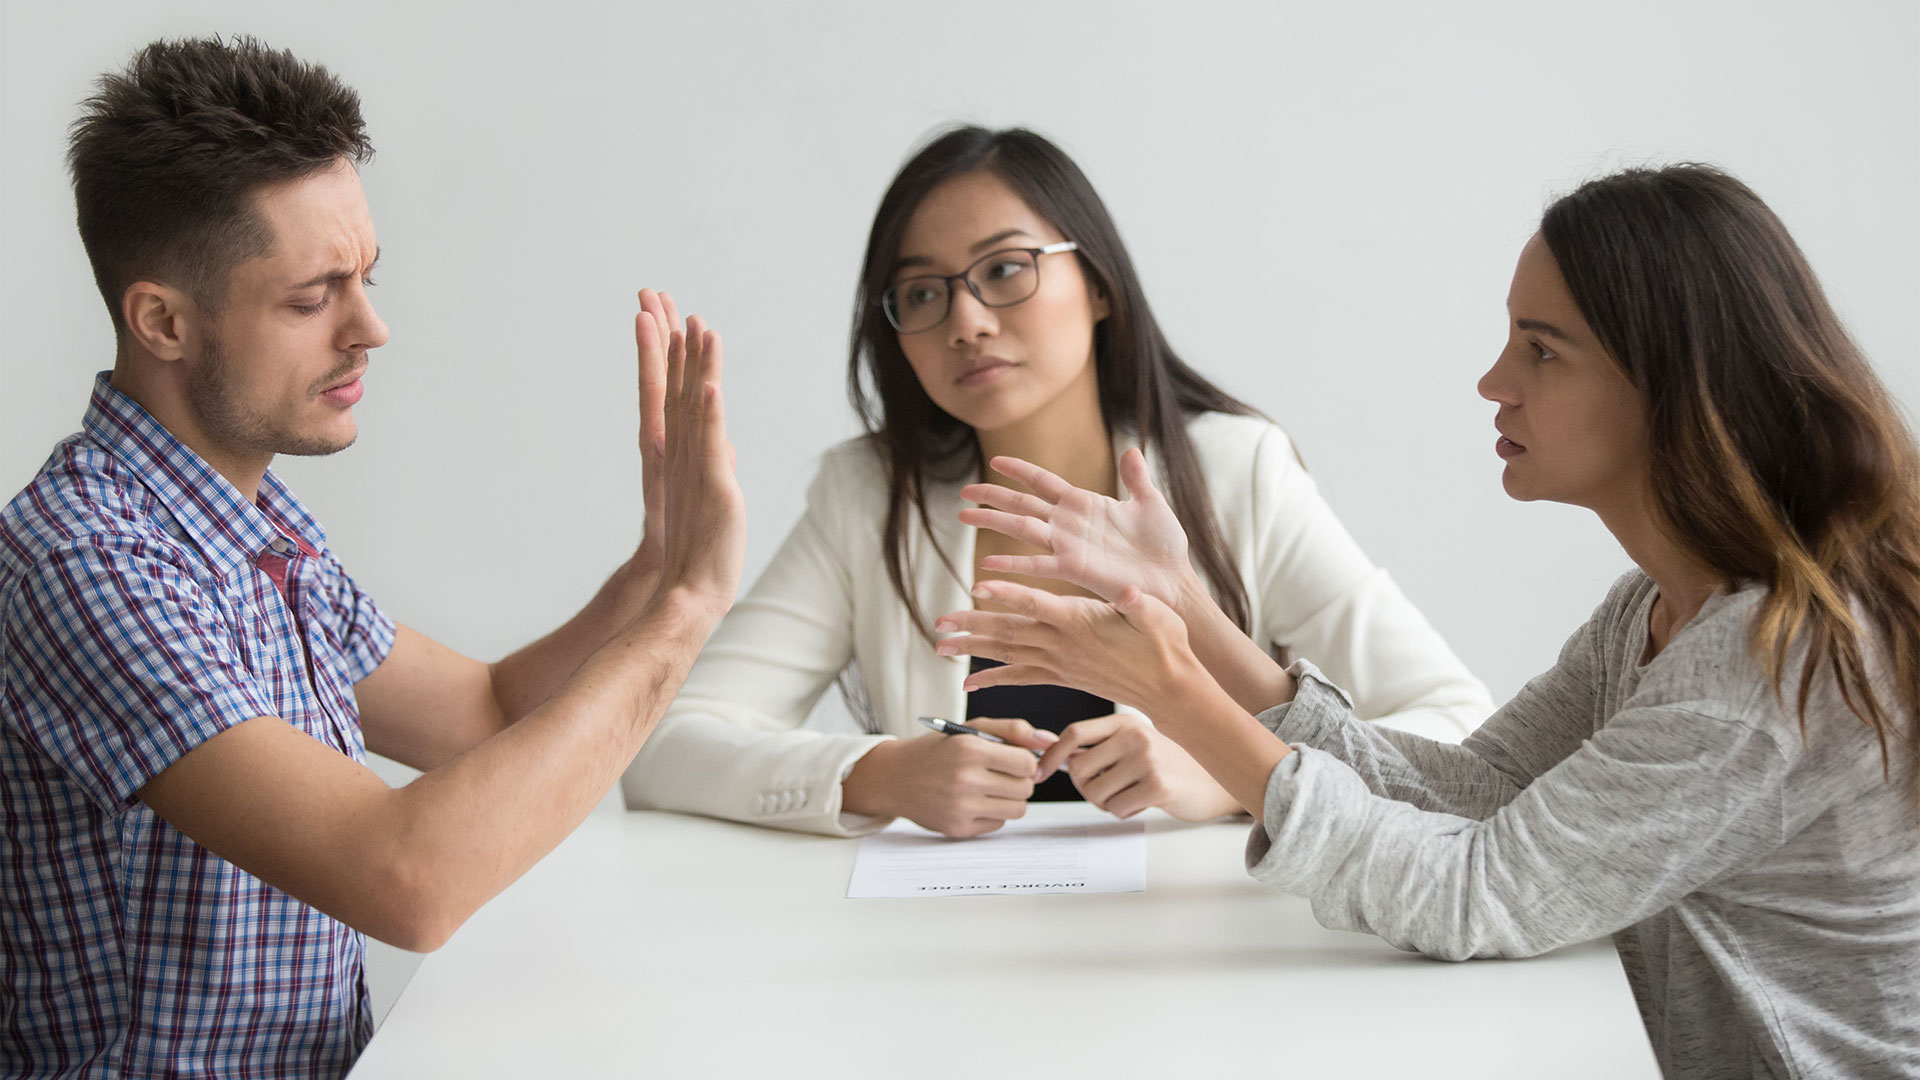 9 Common Coaching Objections That Every Business Coach Faces